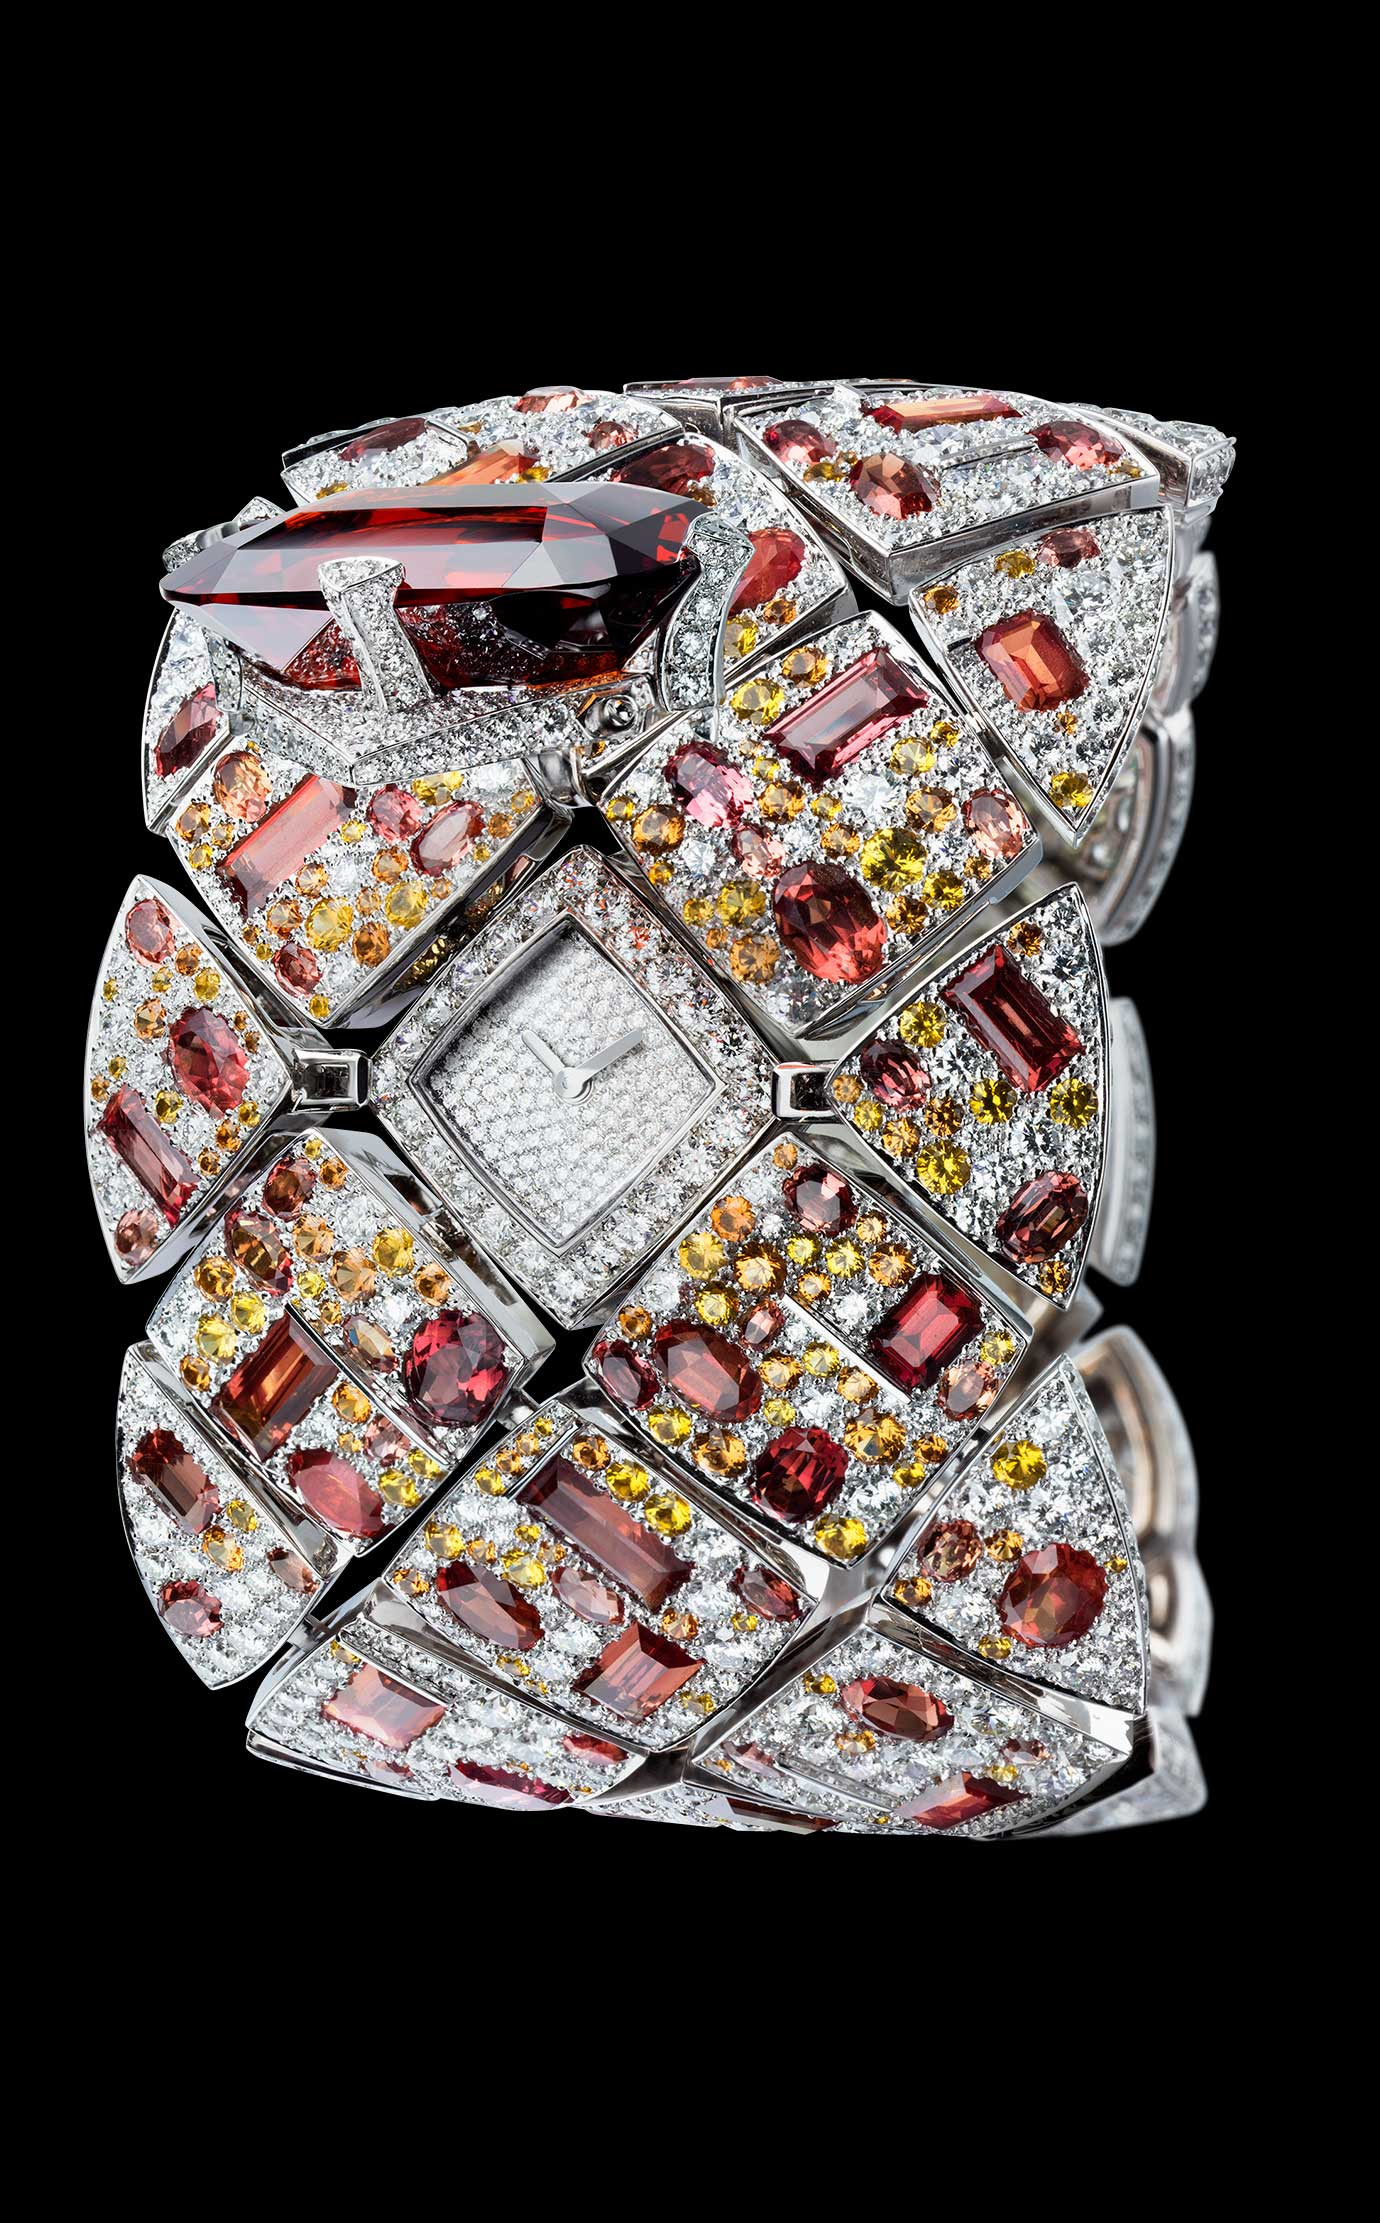 Les Eternelles de CHANEL. Secret cuff watch in 18K white gold. 39.92-carat crimson garnet. - Open